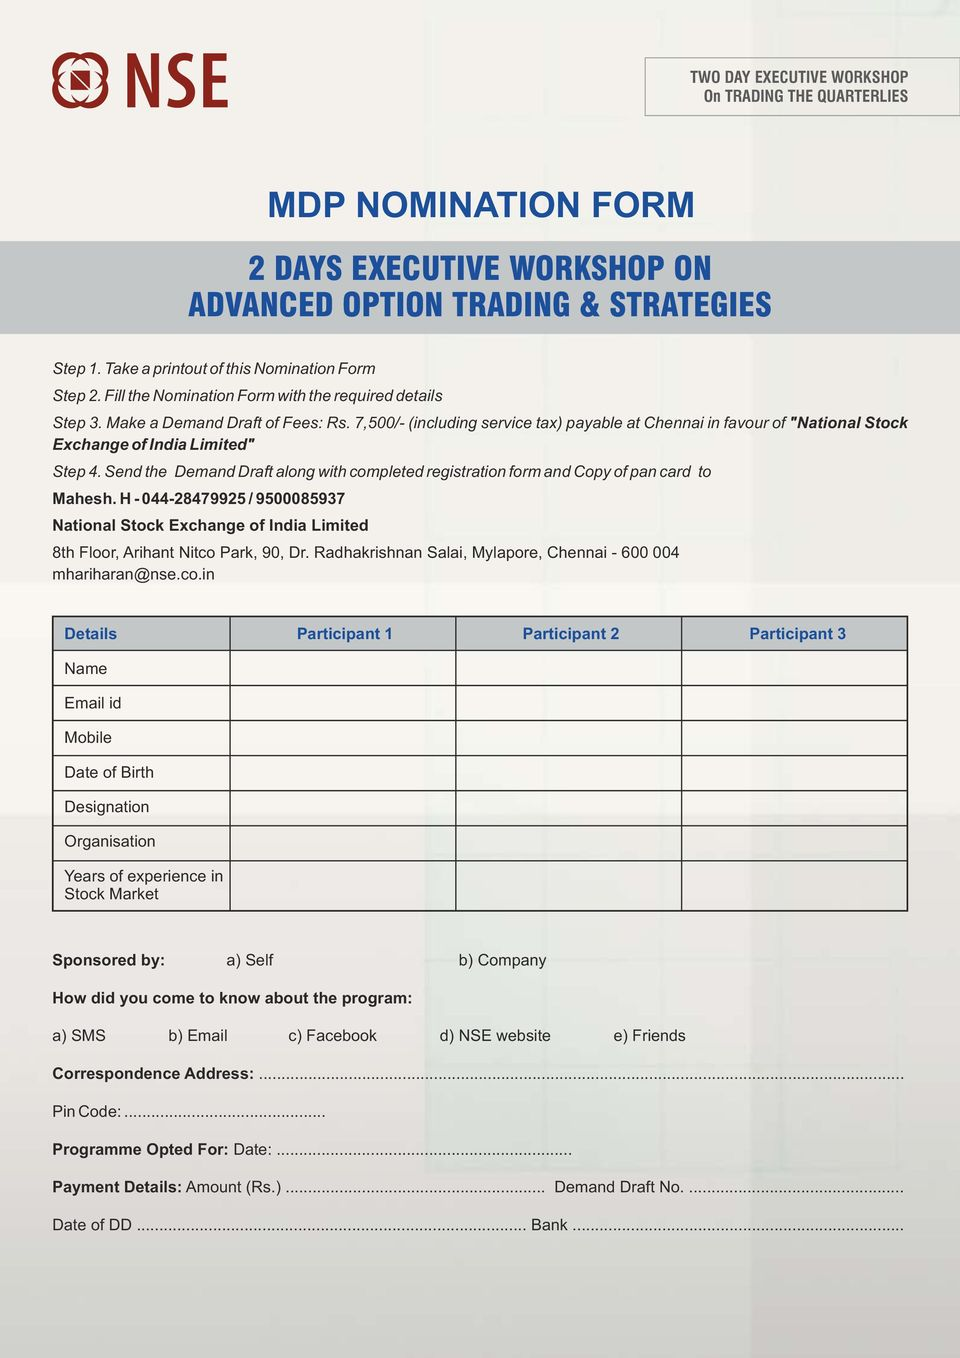 Send the Demand Draft along with completed registration form and Copy of pan card to Mahesh.